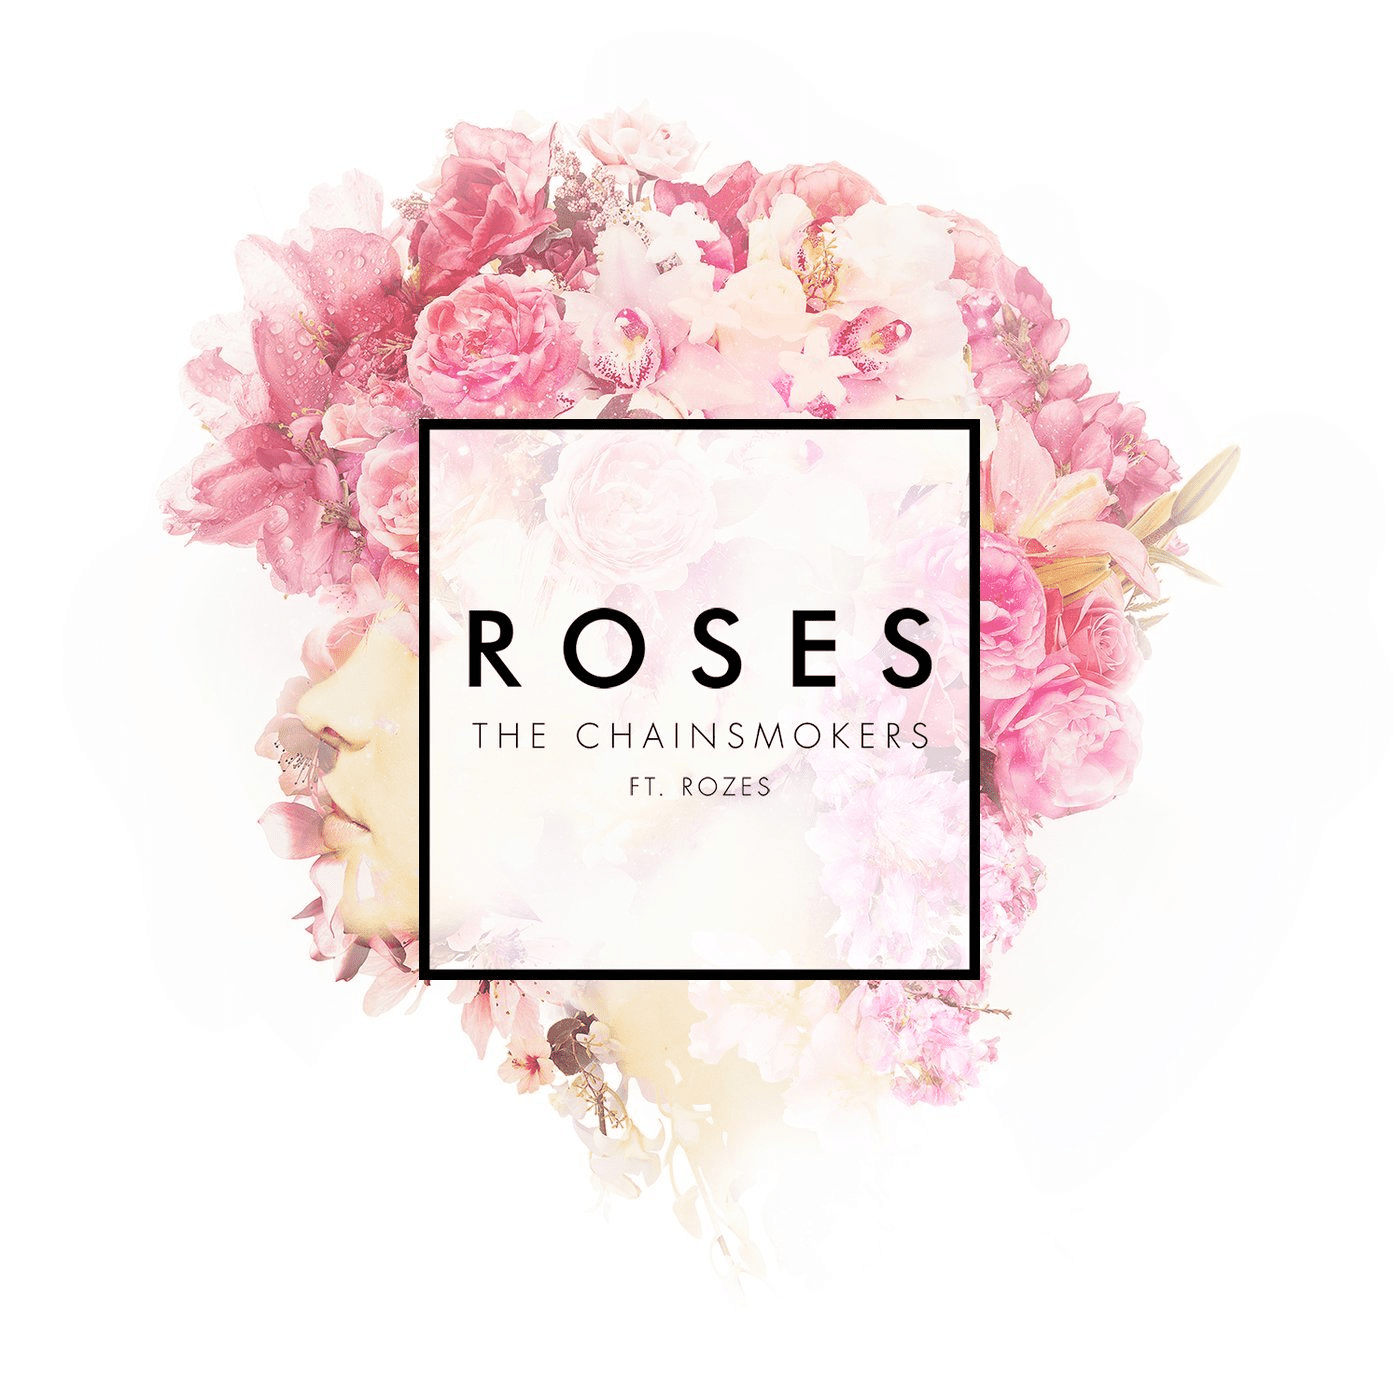 The Chainsmokers Roses album cover